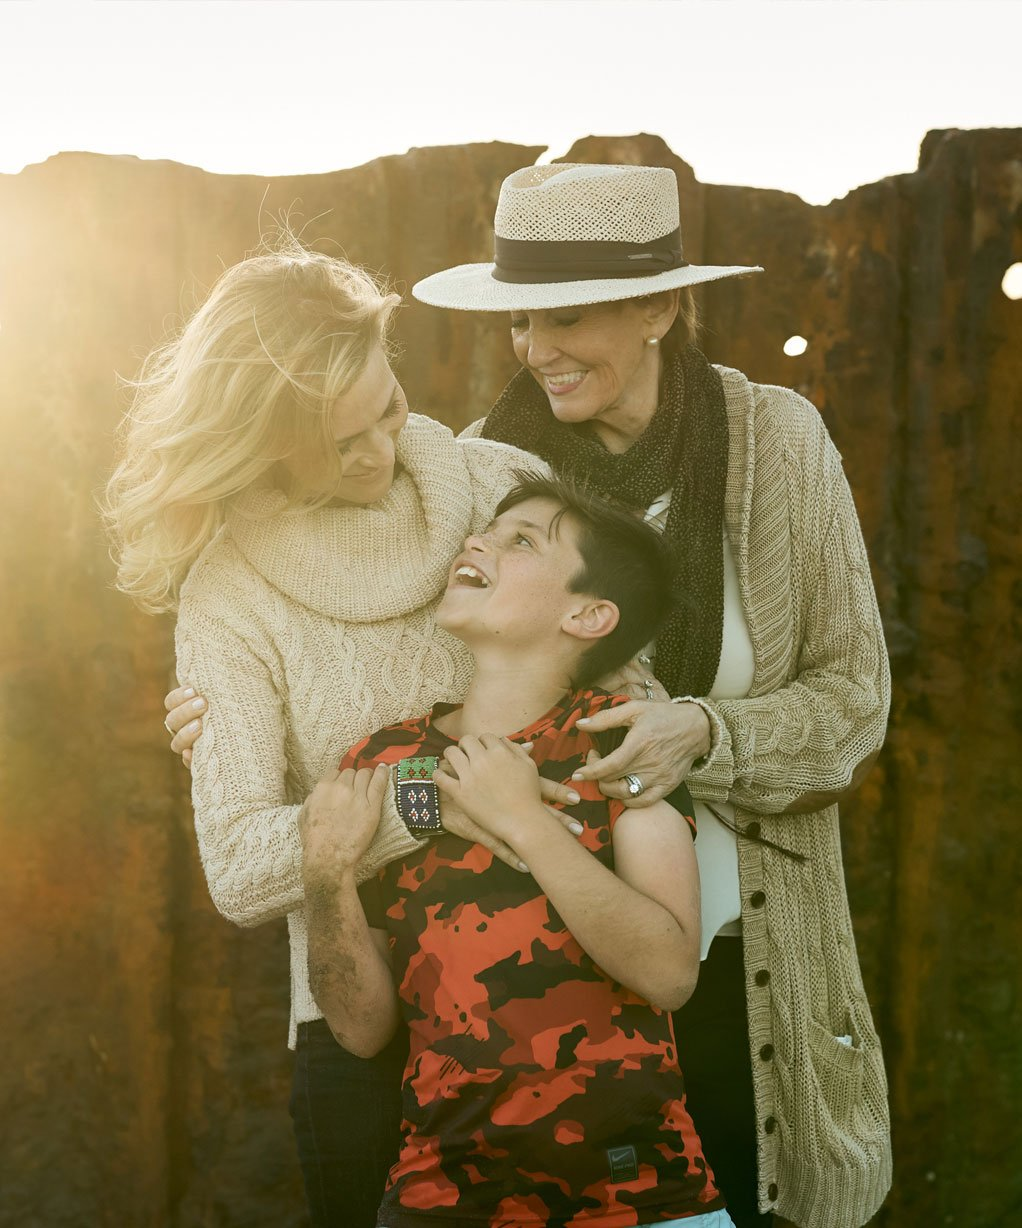 Kathy with her daughter and grandson